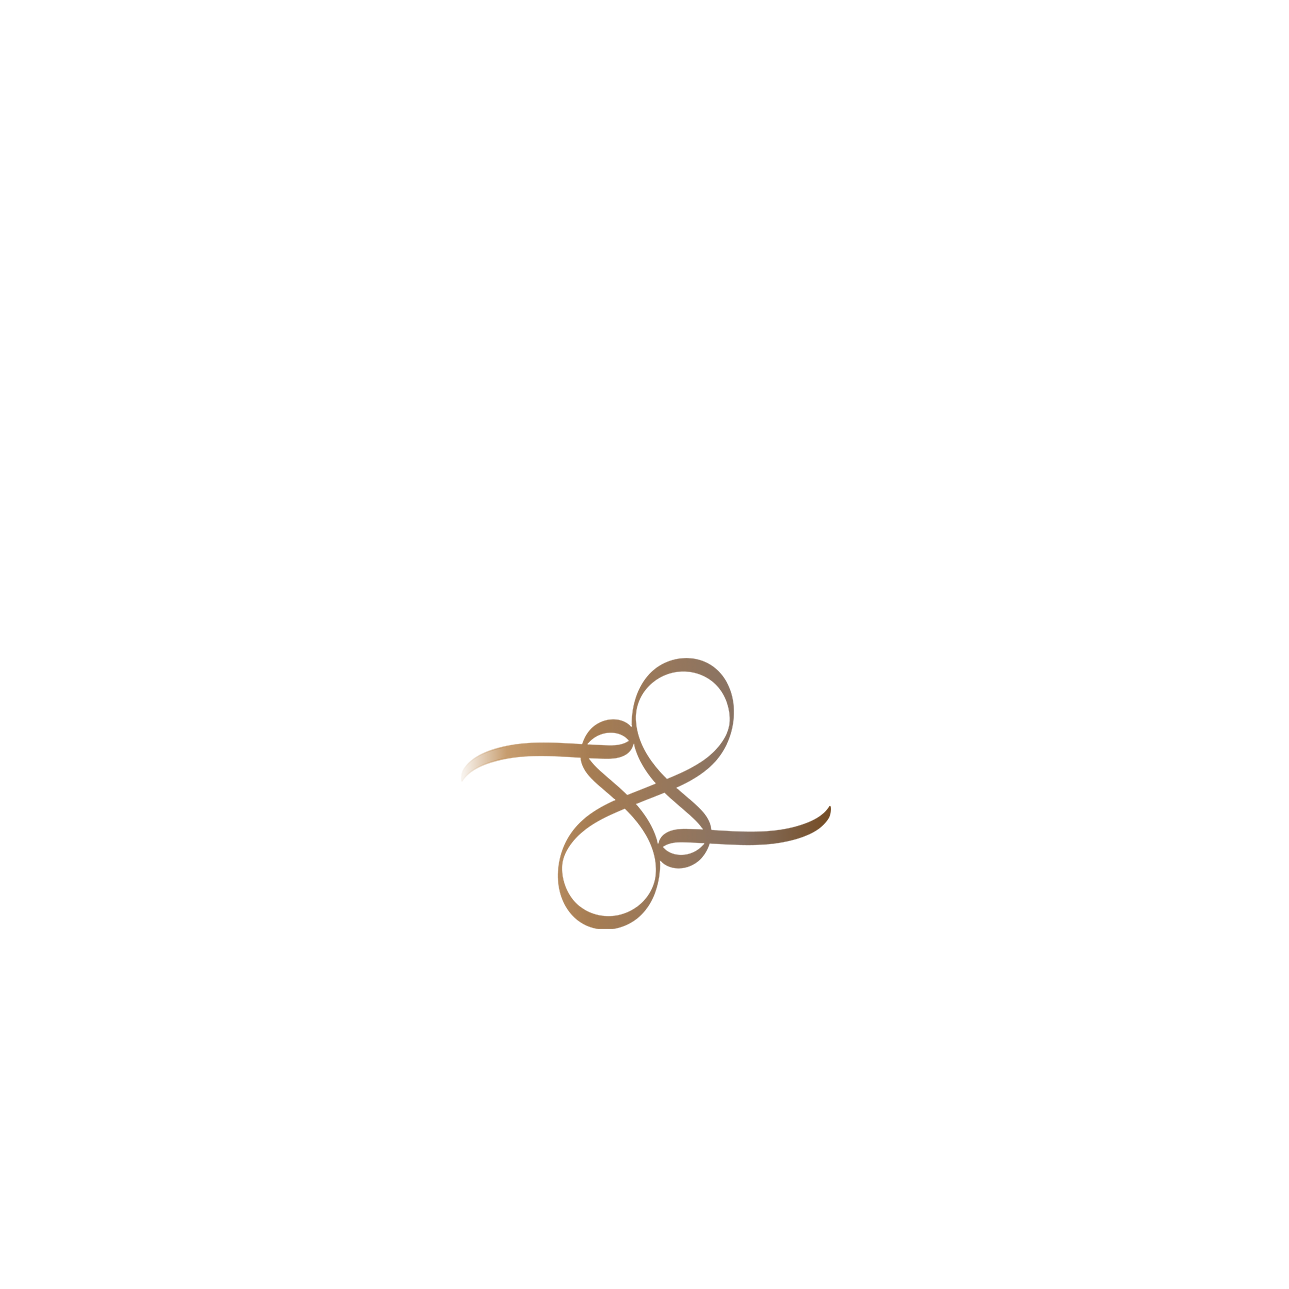 Sean LeBlanc Photography studio logo